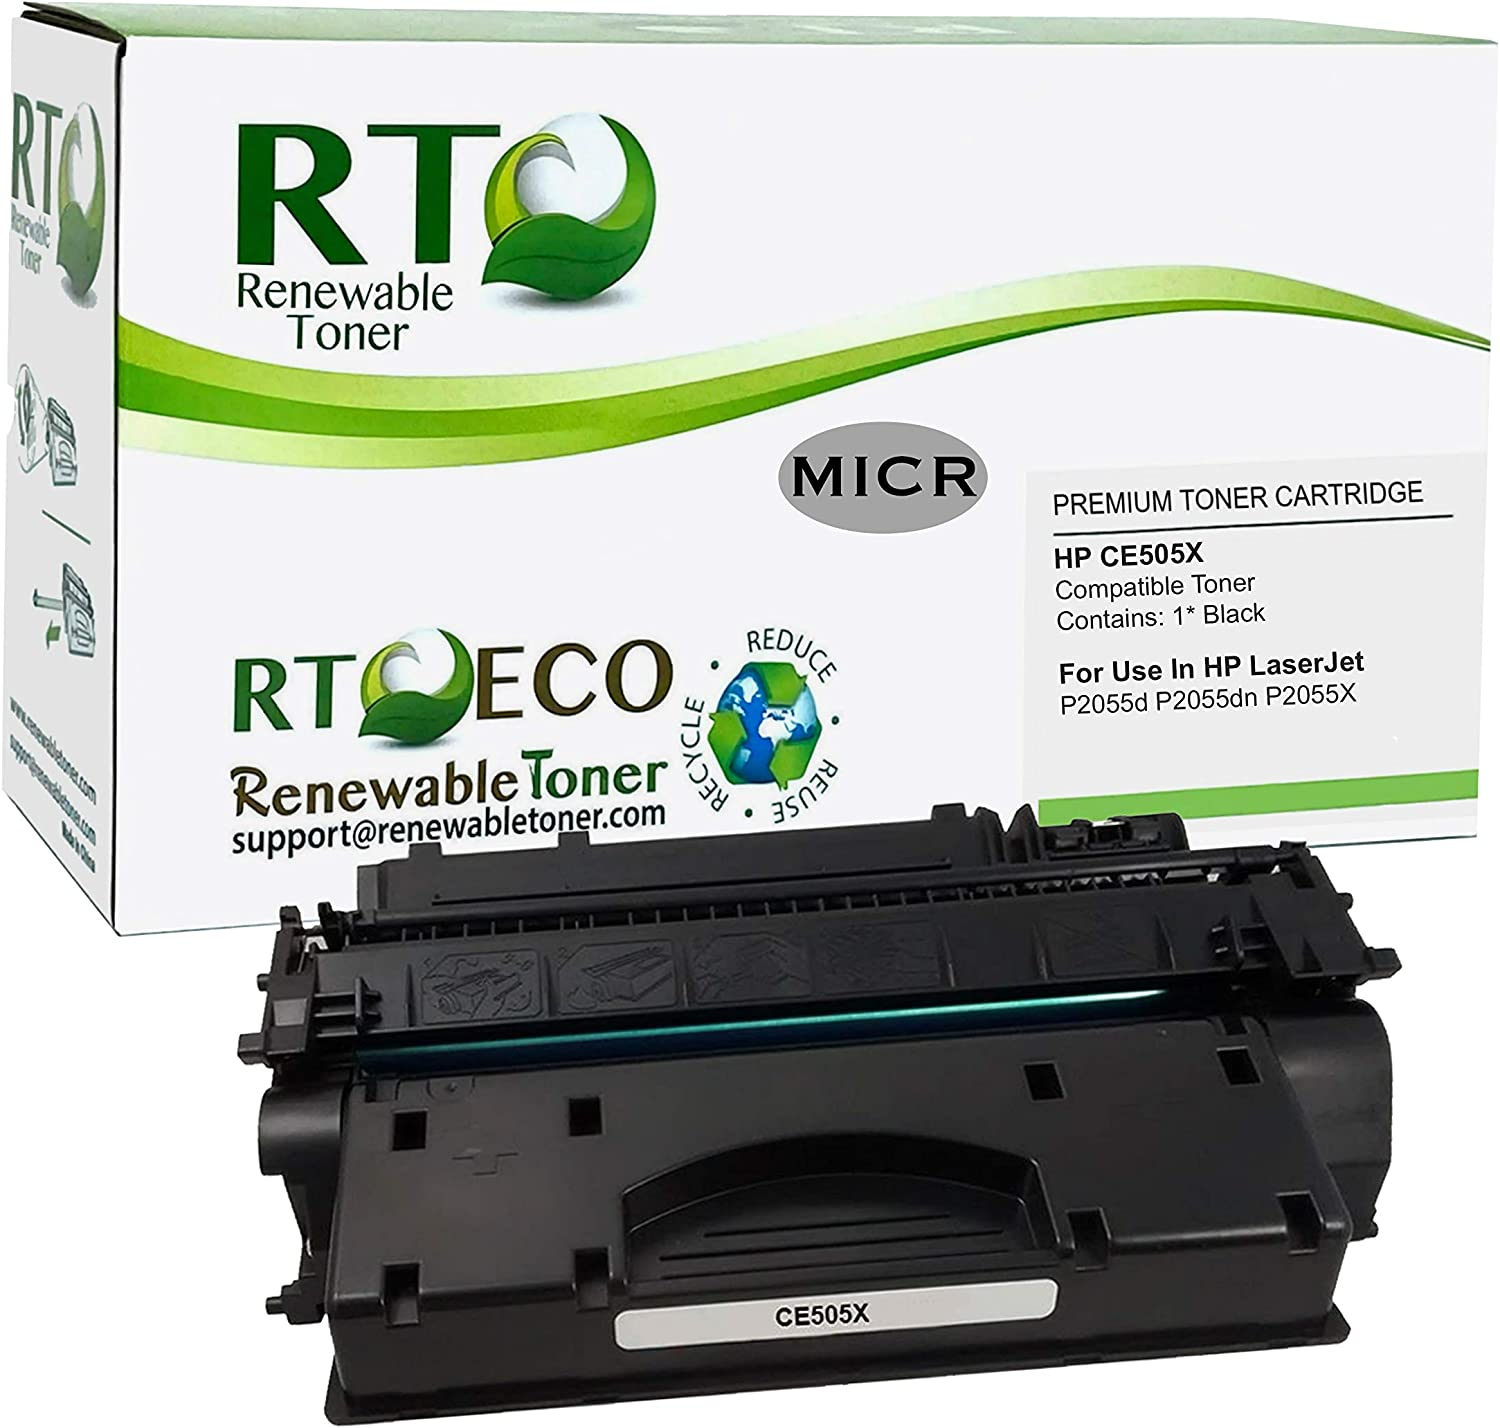 Renewable Toner Compatible MICR Toner Cartridge High Yield Replacement for HP 05X CE505X for use in LaserJet P2055